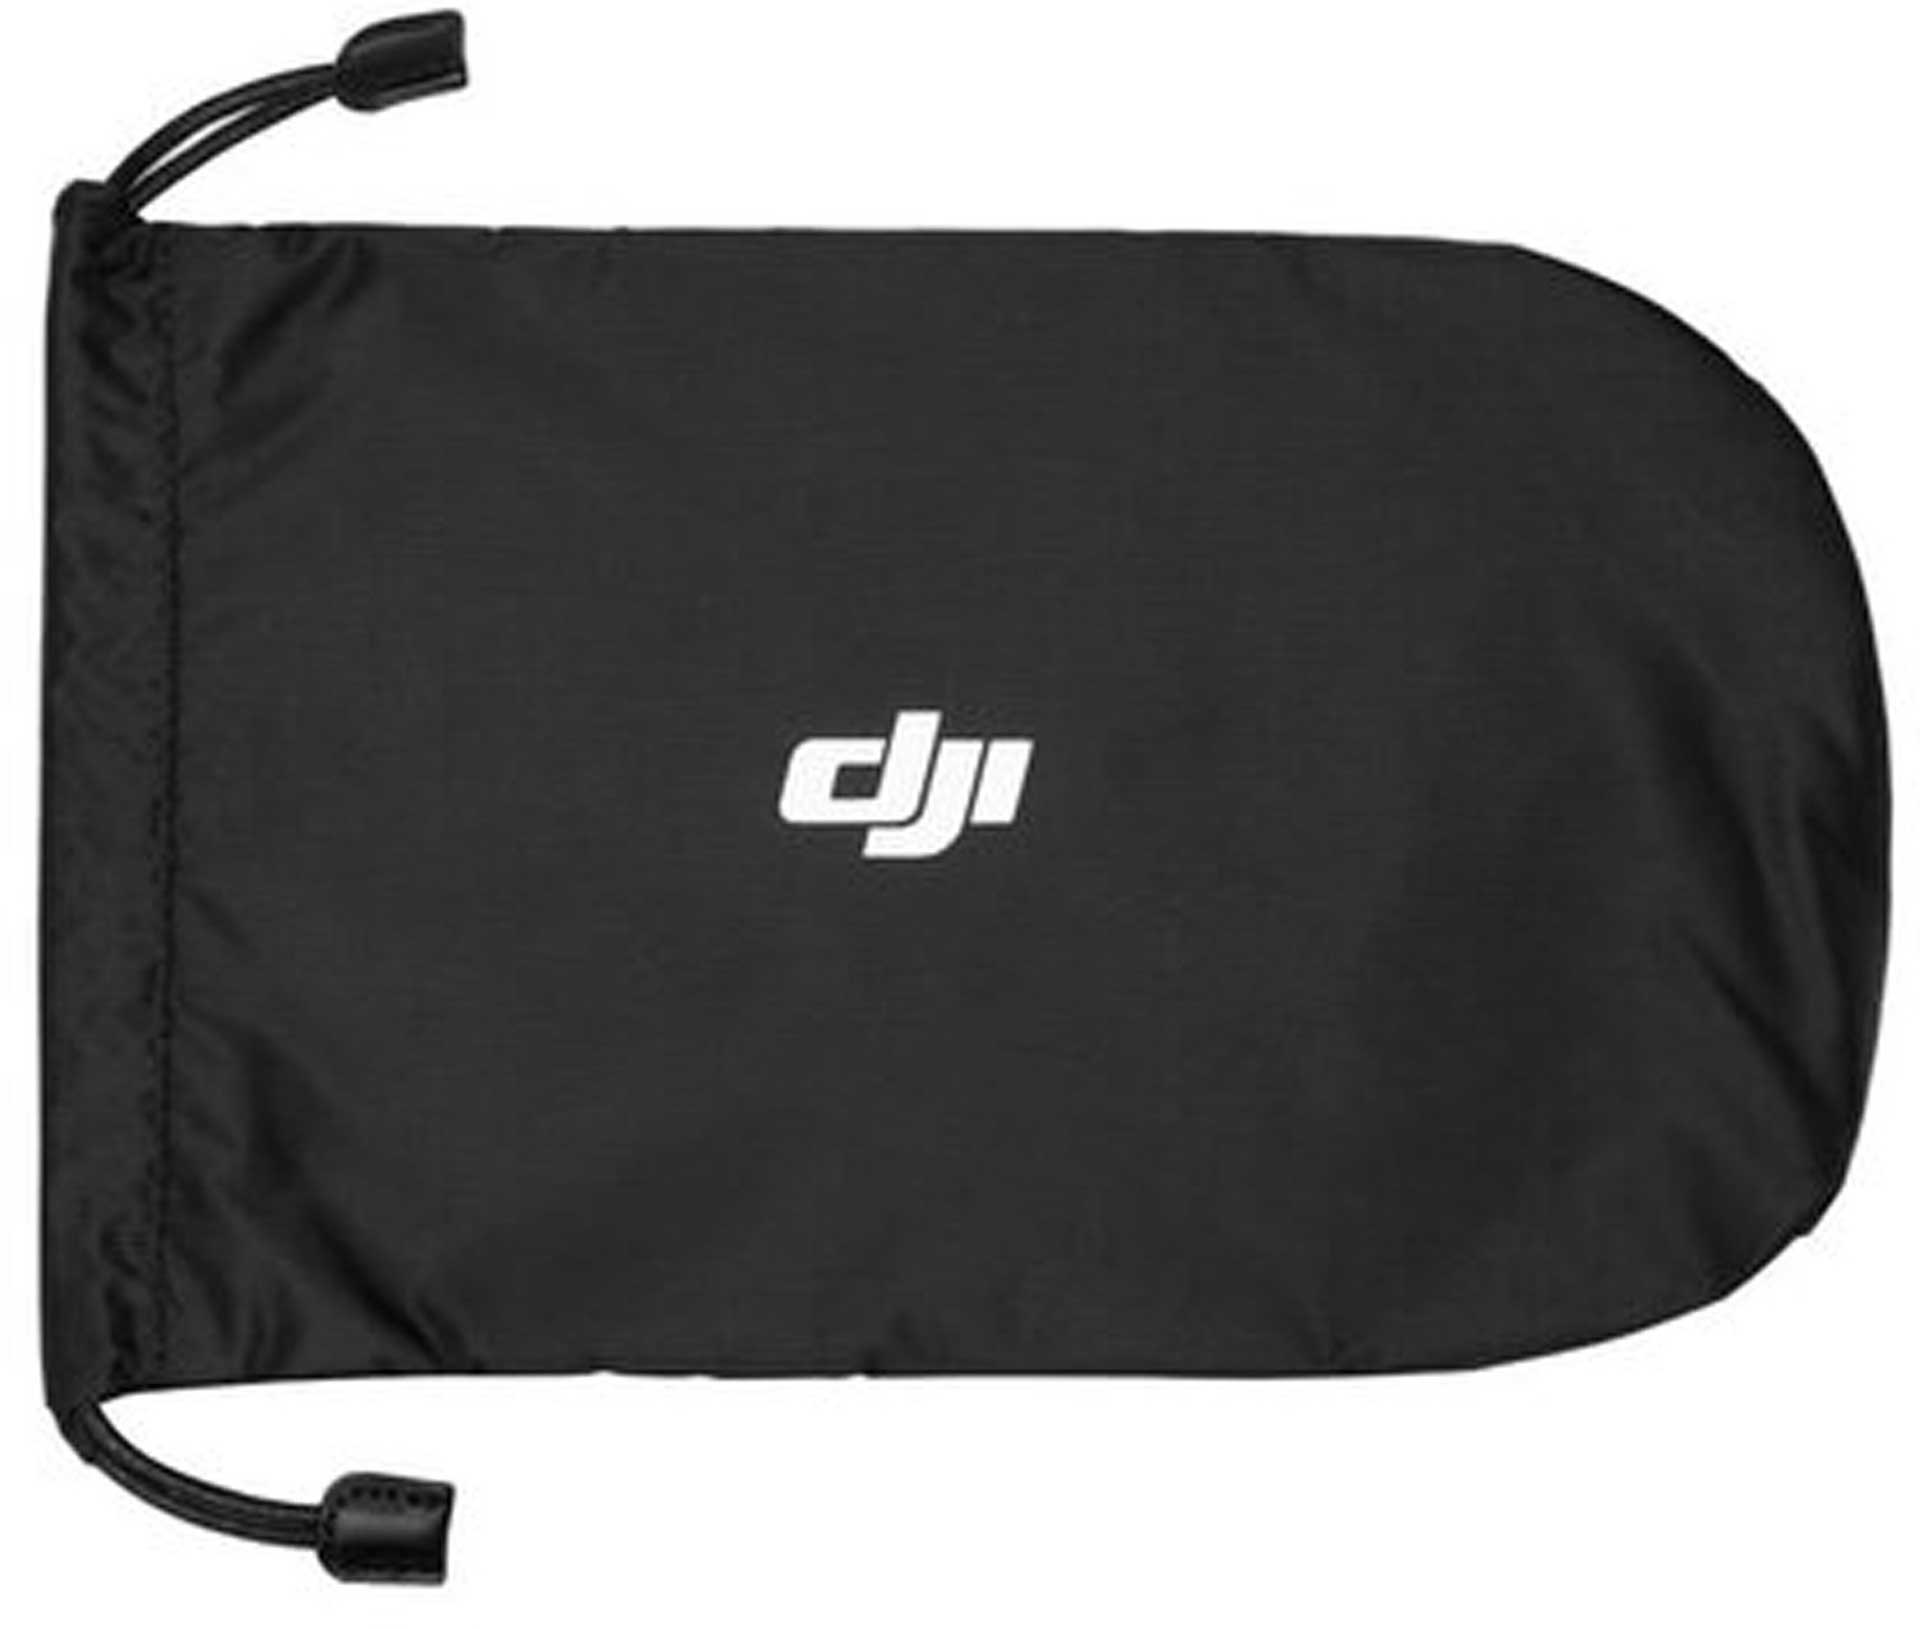 DJI MAVIC AIR 2 - STORAGE BAG